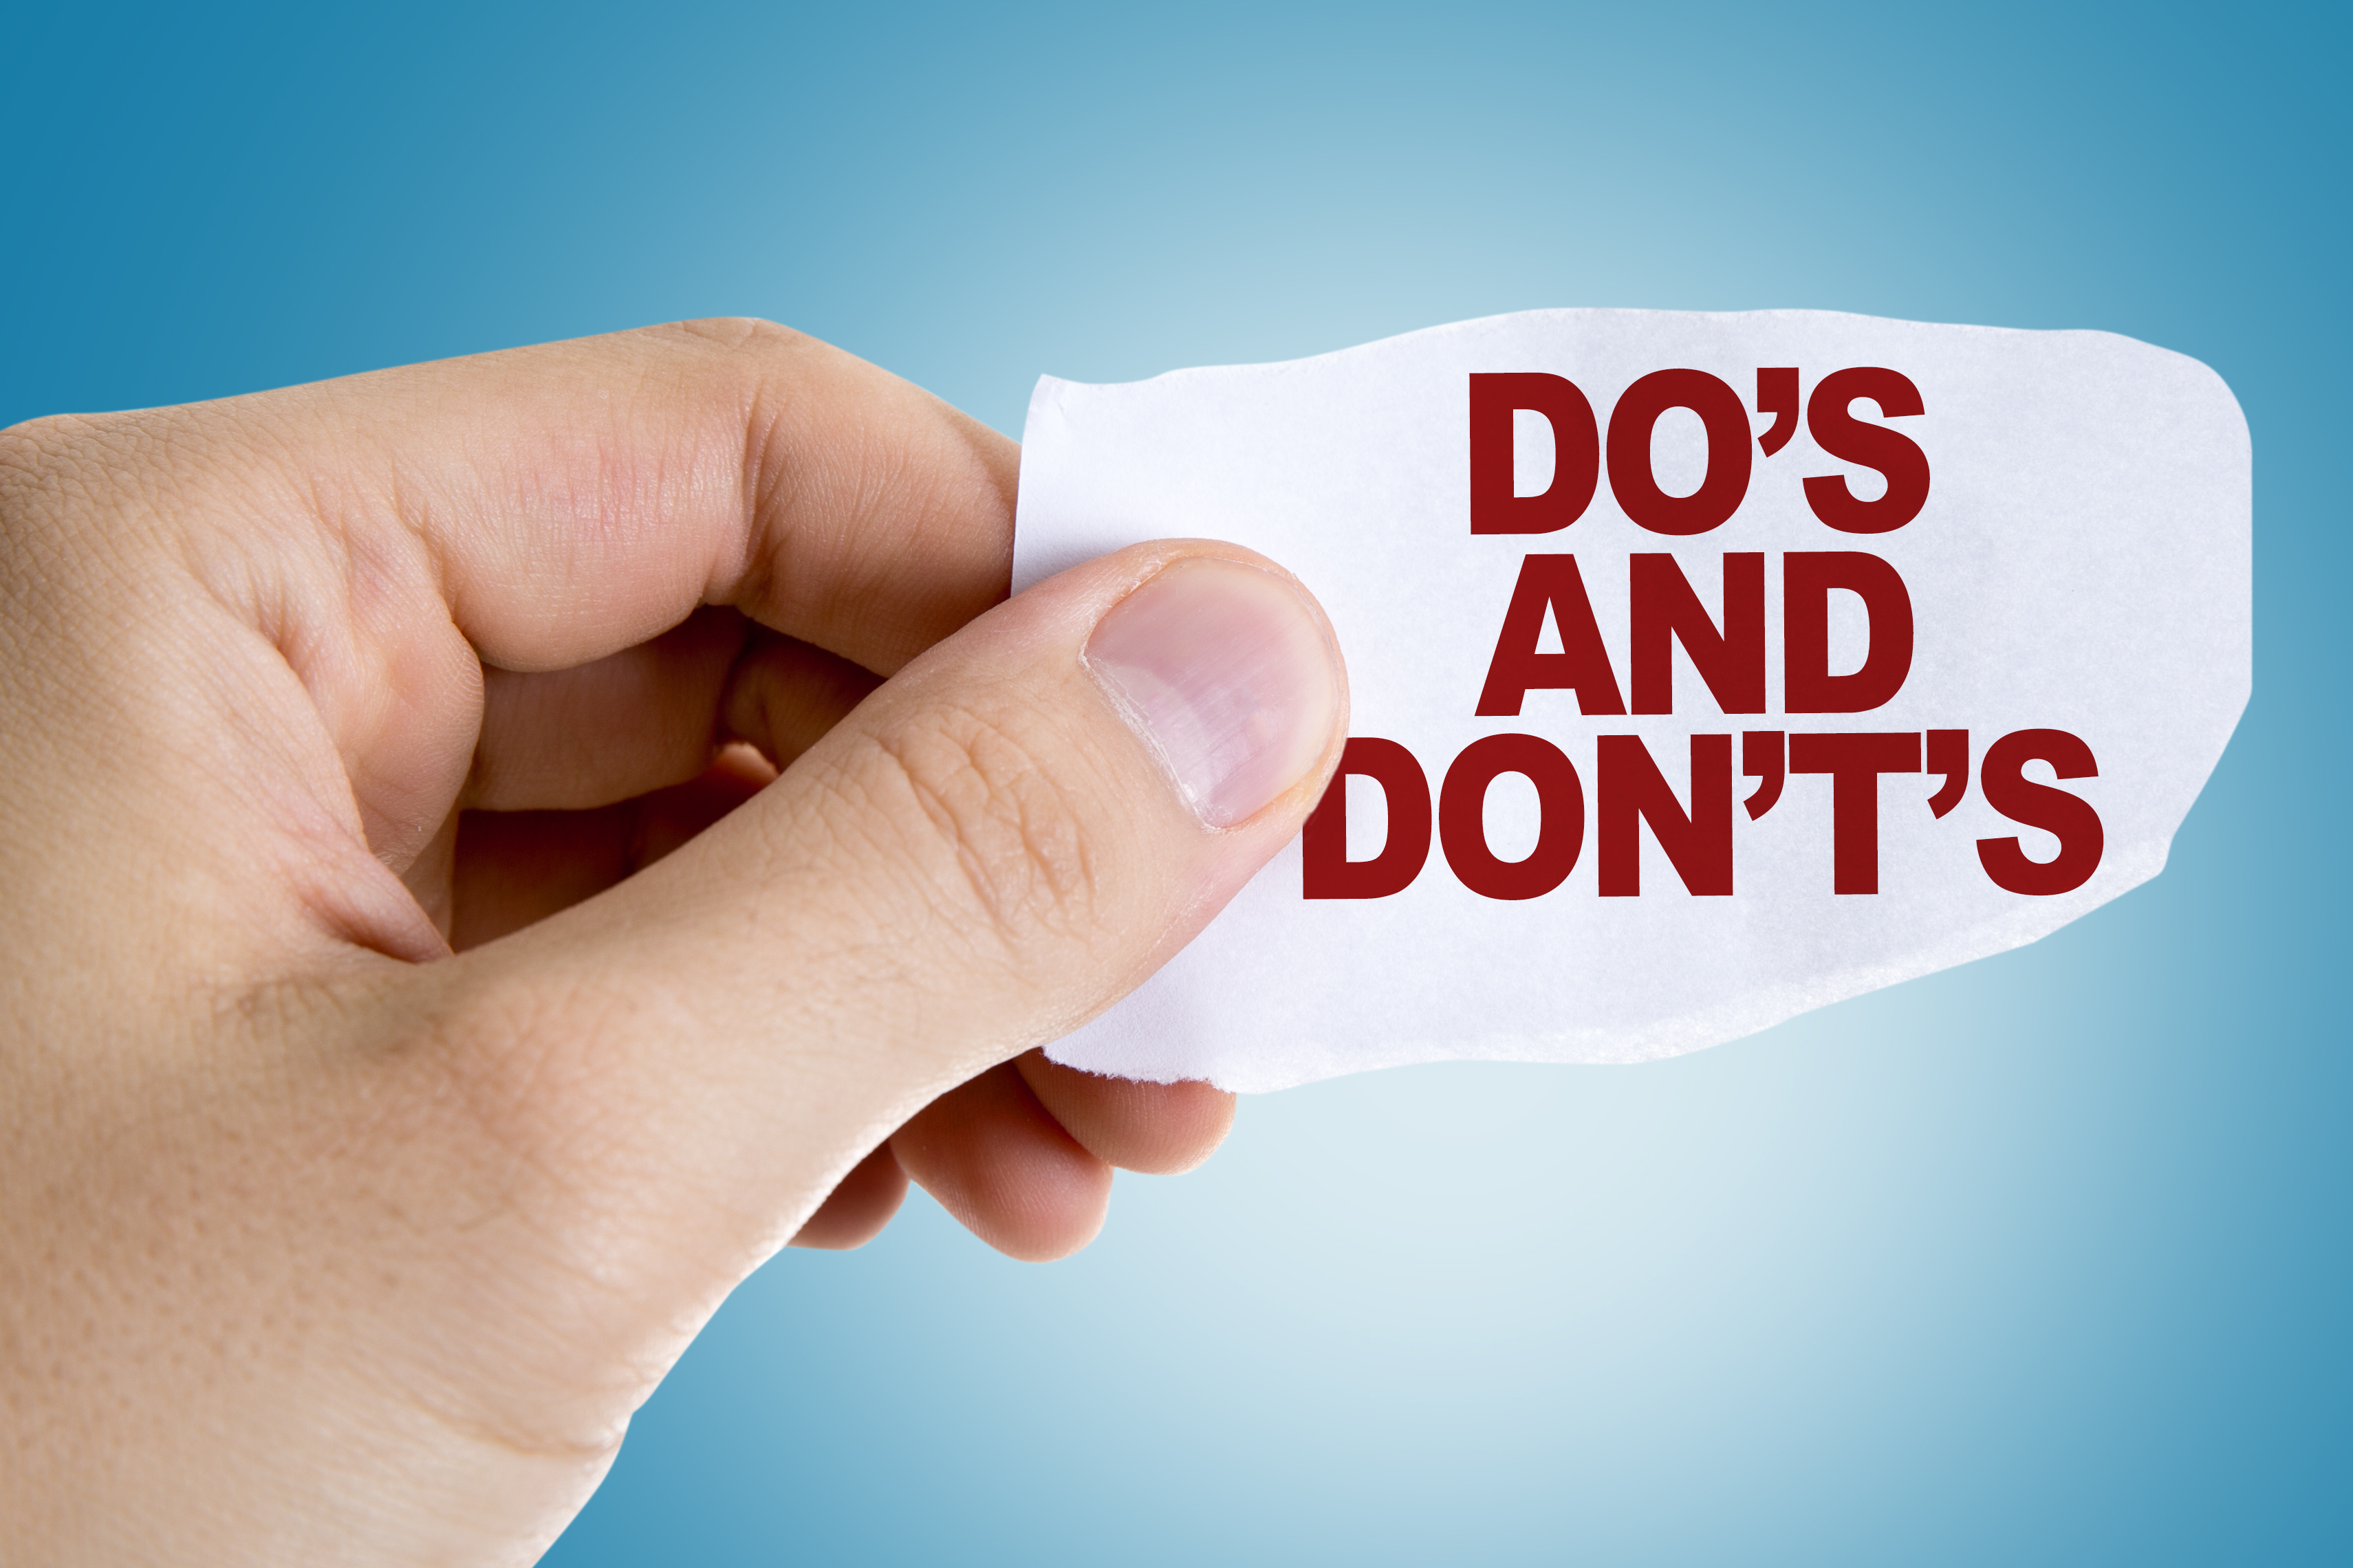 Do's and Don'ts in Real Estate by Flat fee broker Phoenix